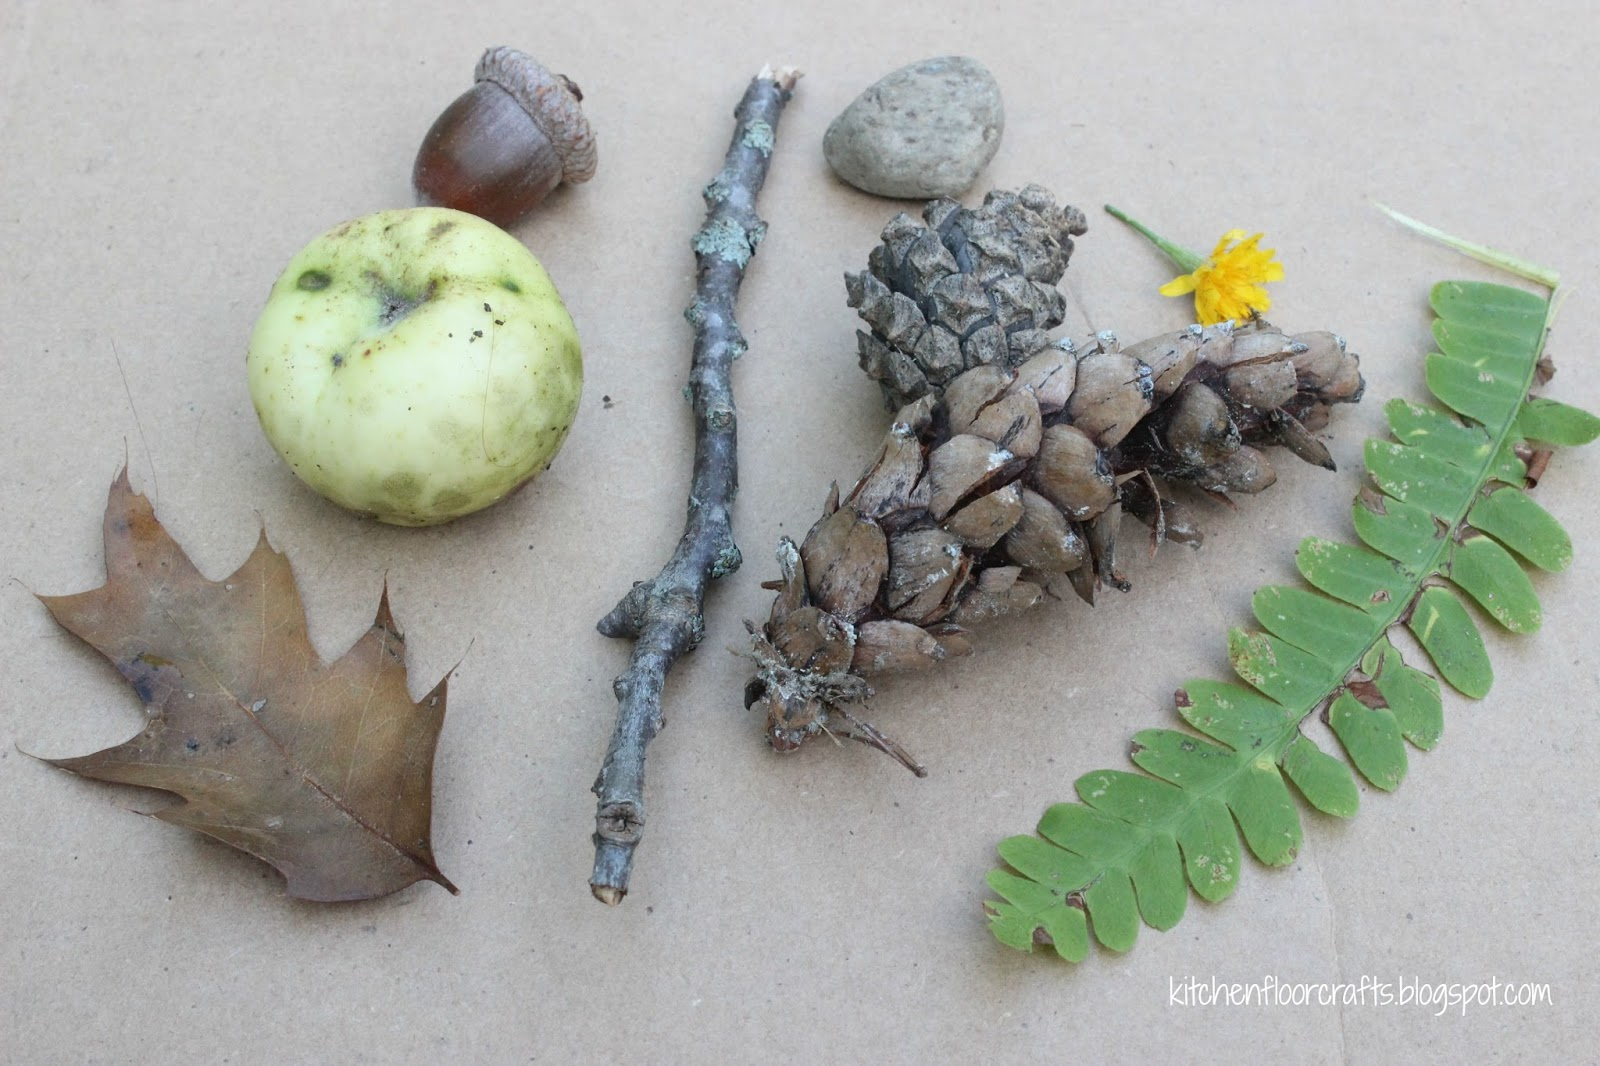 objects nature sink float natural crafts exploration flower object different fern pinecones sized rock boys kitchen